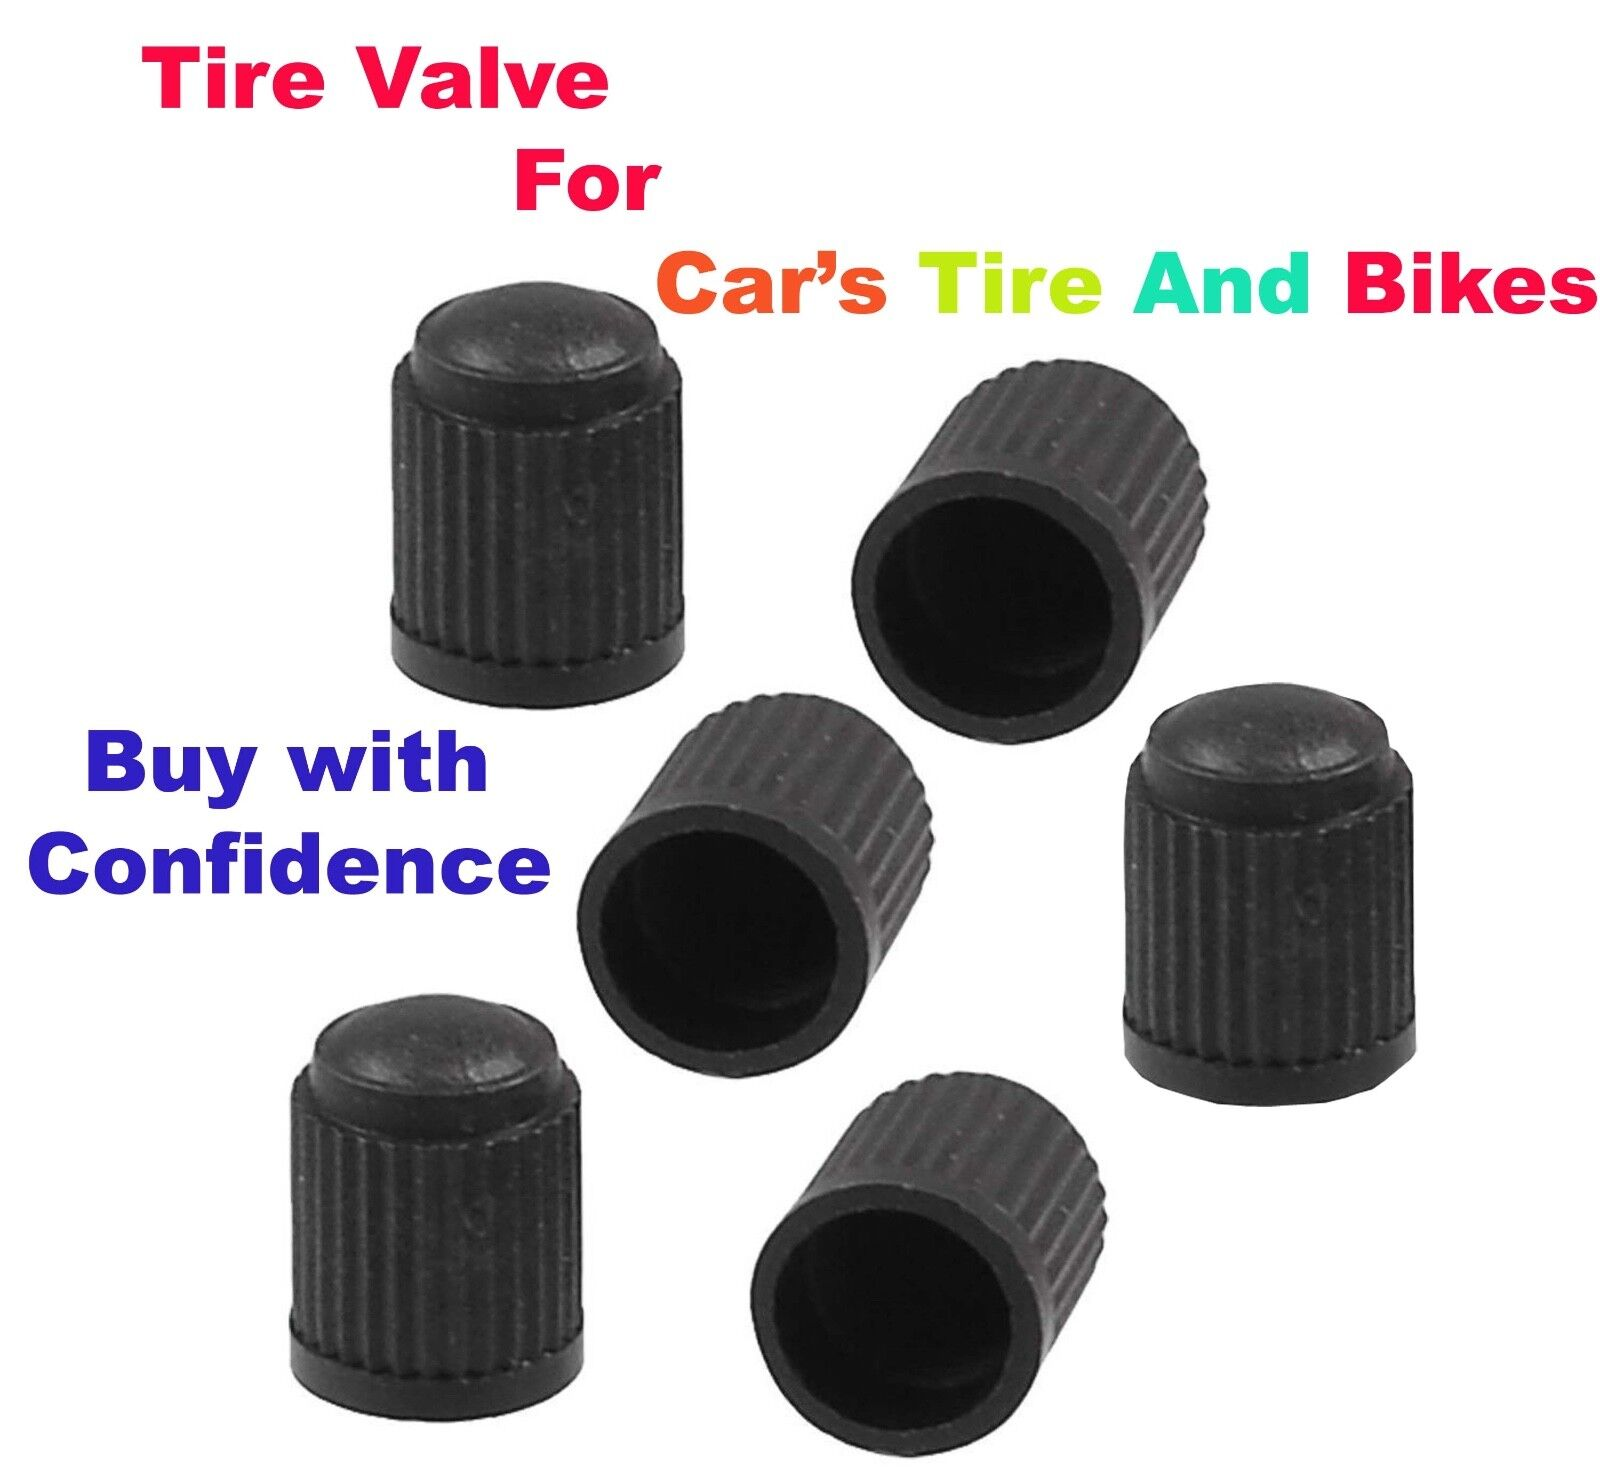 15x Set Tyre Tire plastic Valve Cover Caps for car and bikes:-